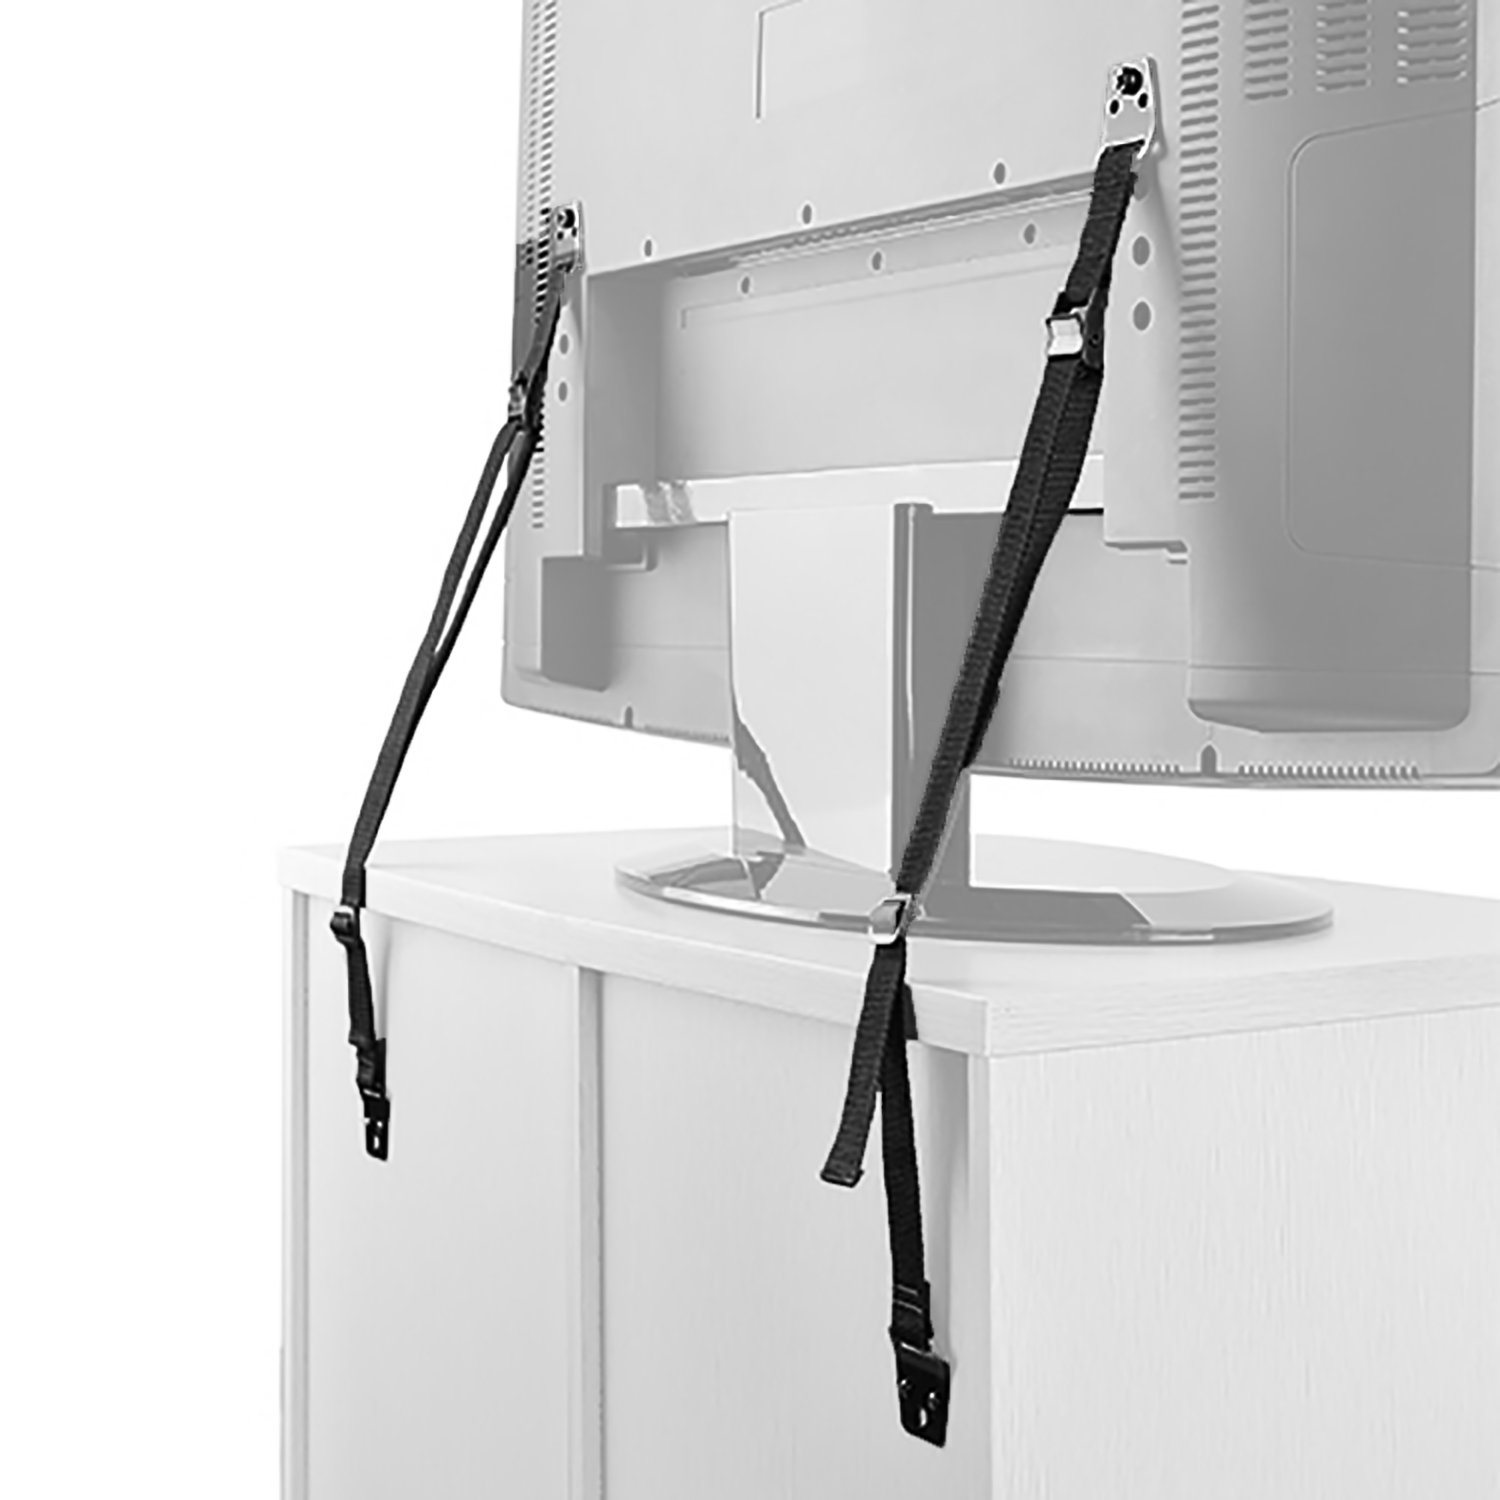 flat furniture. WALI Universal Heavy Duty Anti-Tip Straps For Baby Safety Protection Fit Most Flat Screen Furniture